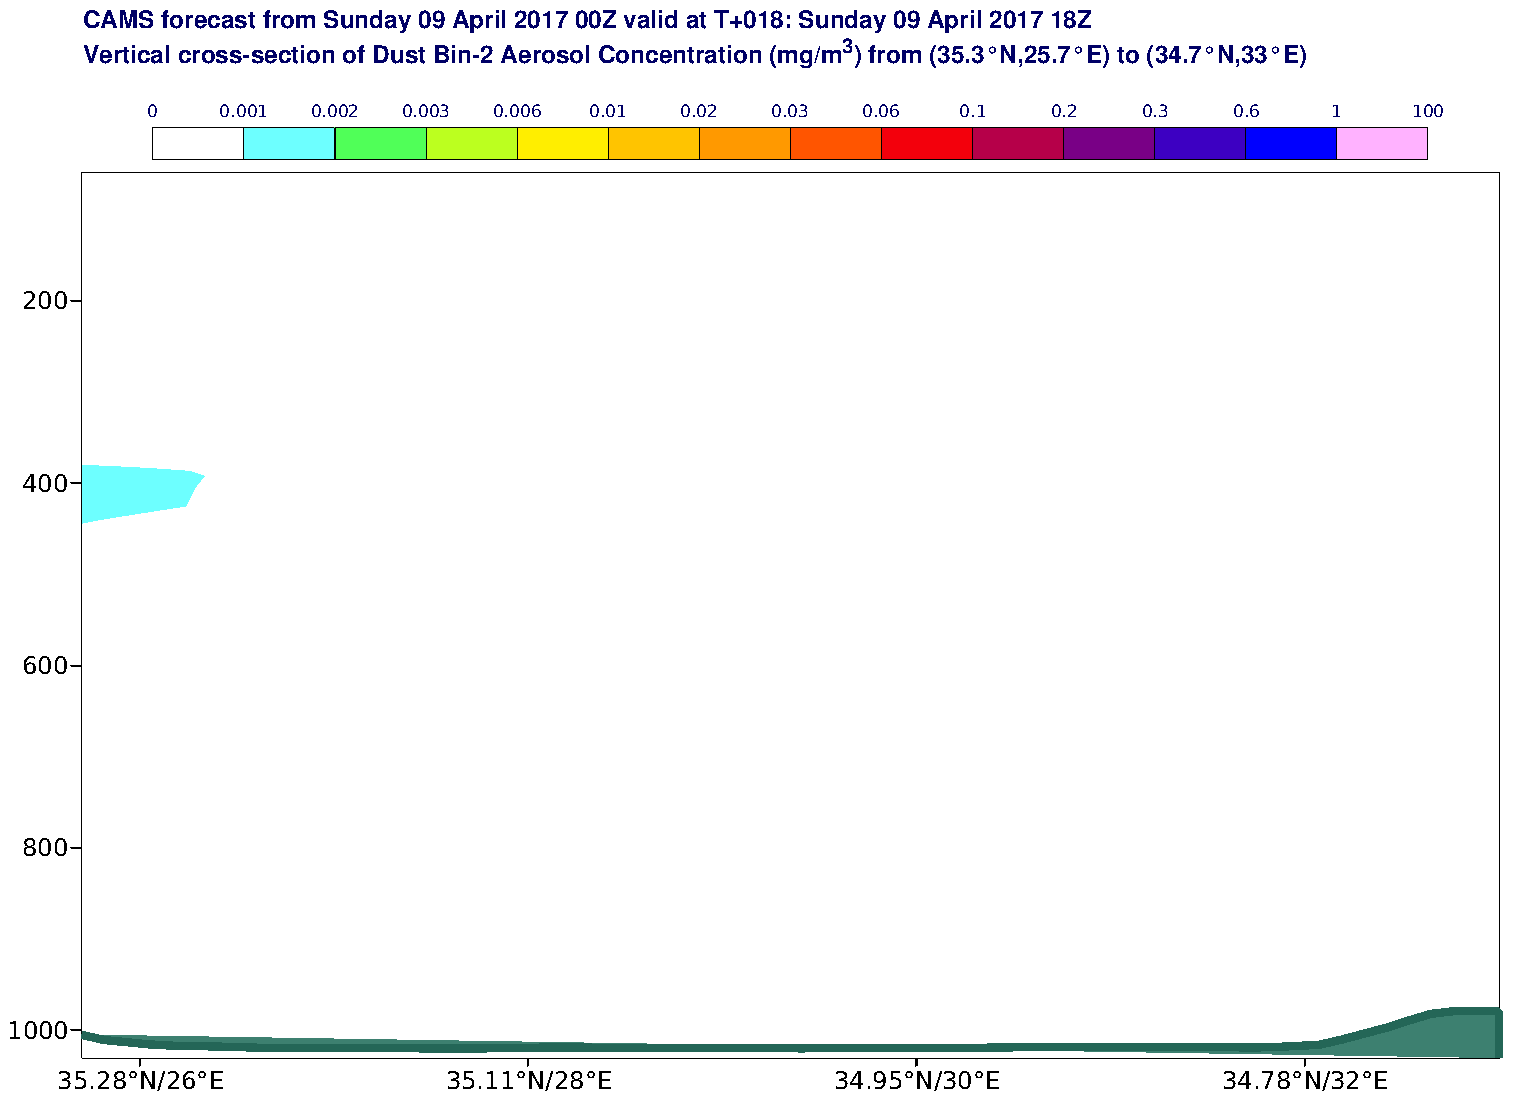 Vertical cross-section of Dust Bin-2 Aerosol Concentration (mg/m3) valid at T18 - 2017-04-09 18:00